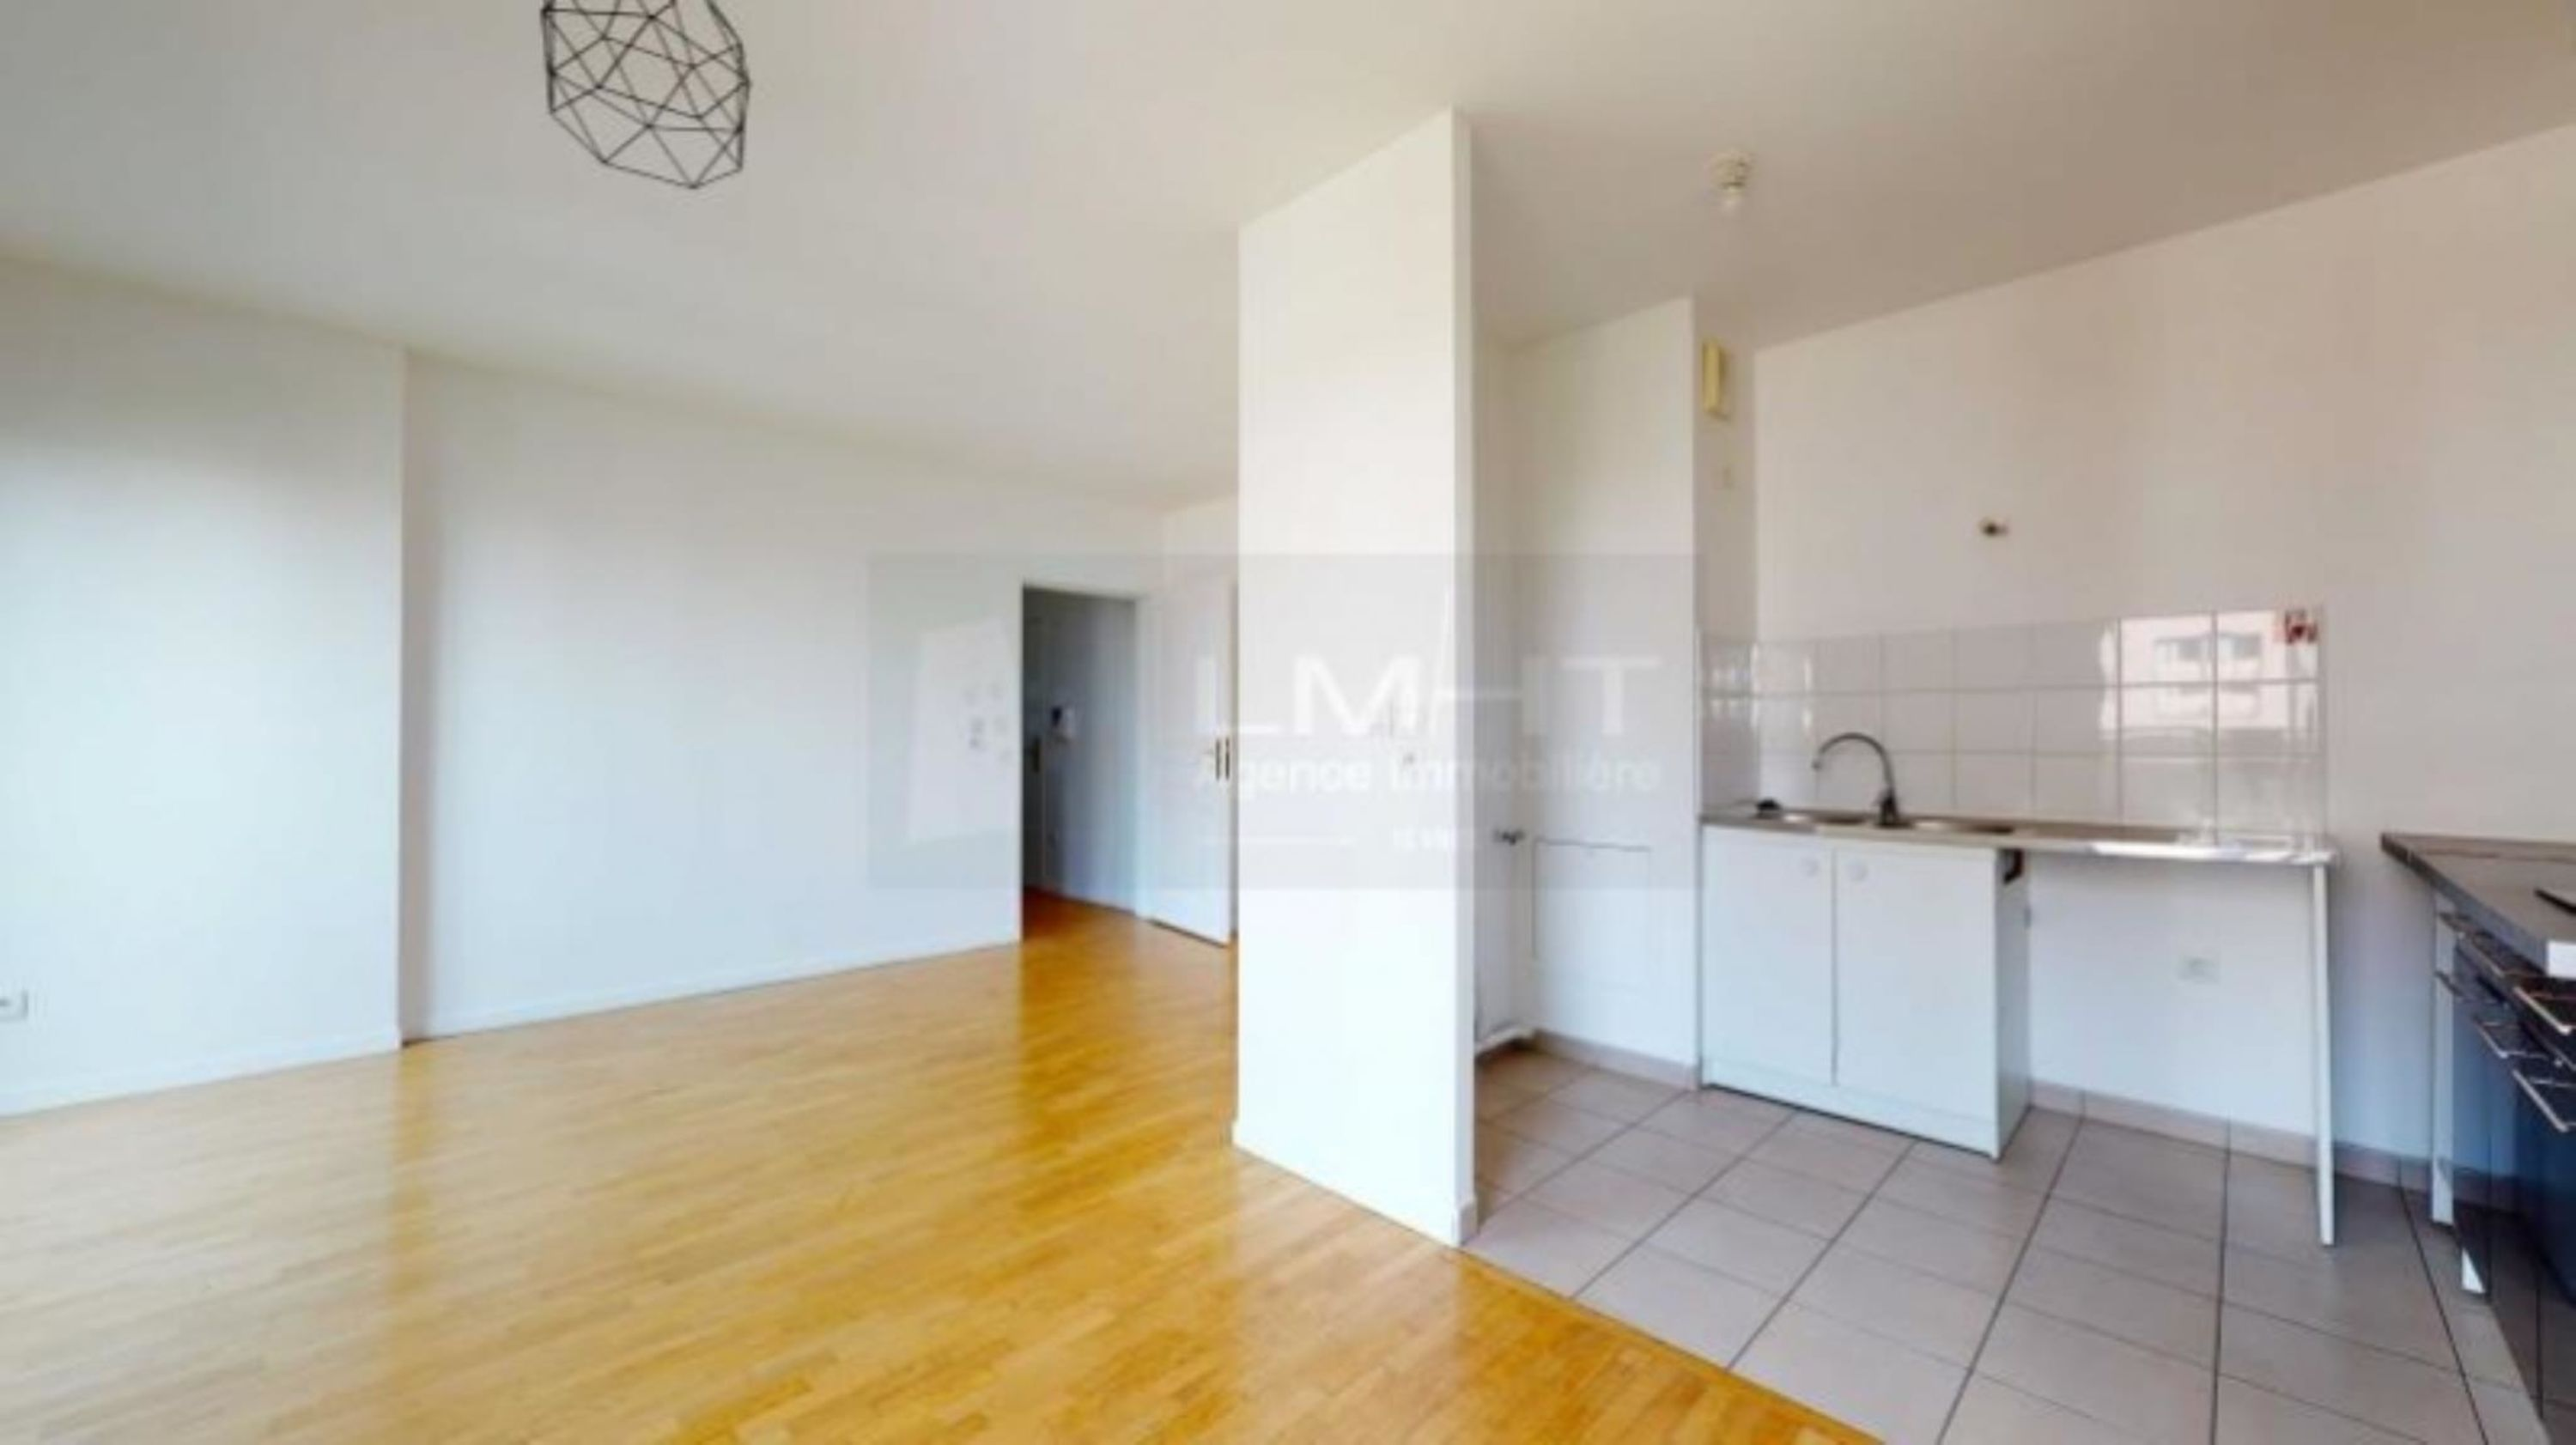 agence immobilière sevres 92 le chesnay 78 achat vente location appartement maison immobilier LMHT ANF RQZOKYII